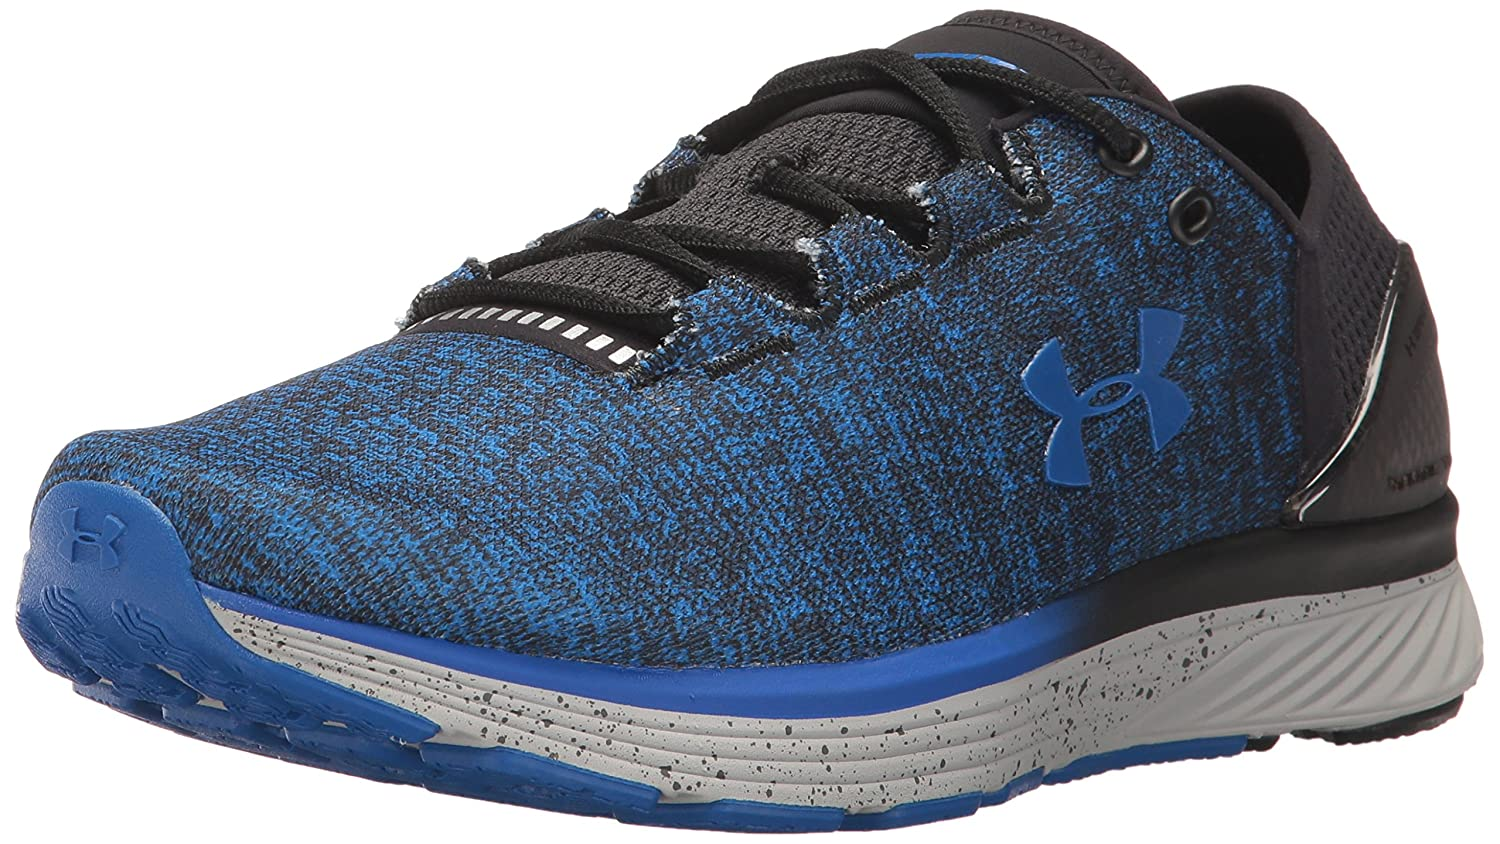 Under Armour UA Charged Bandit 3, Zapatillas para Hombre 1295725